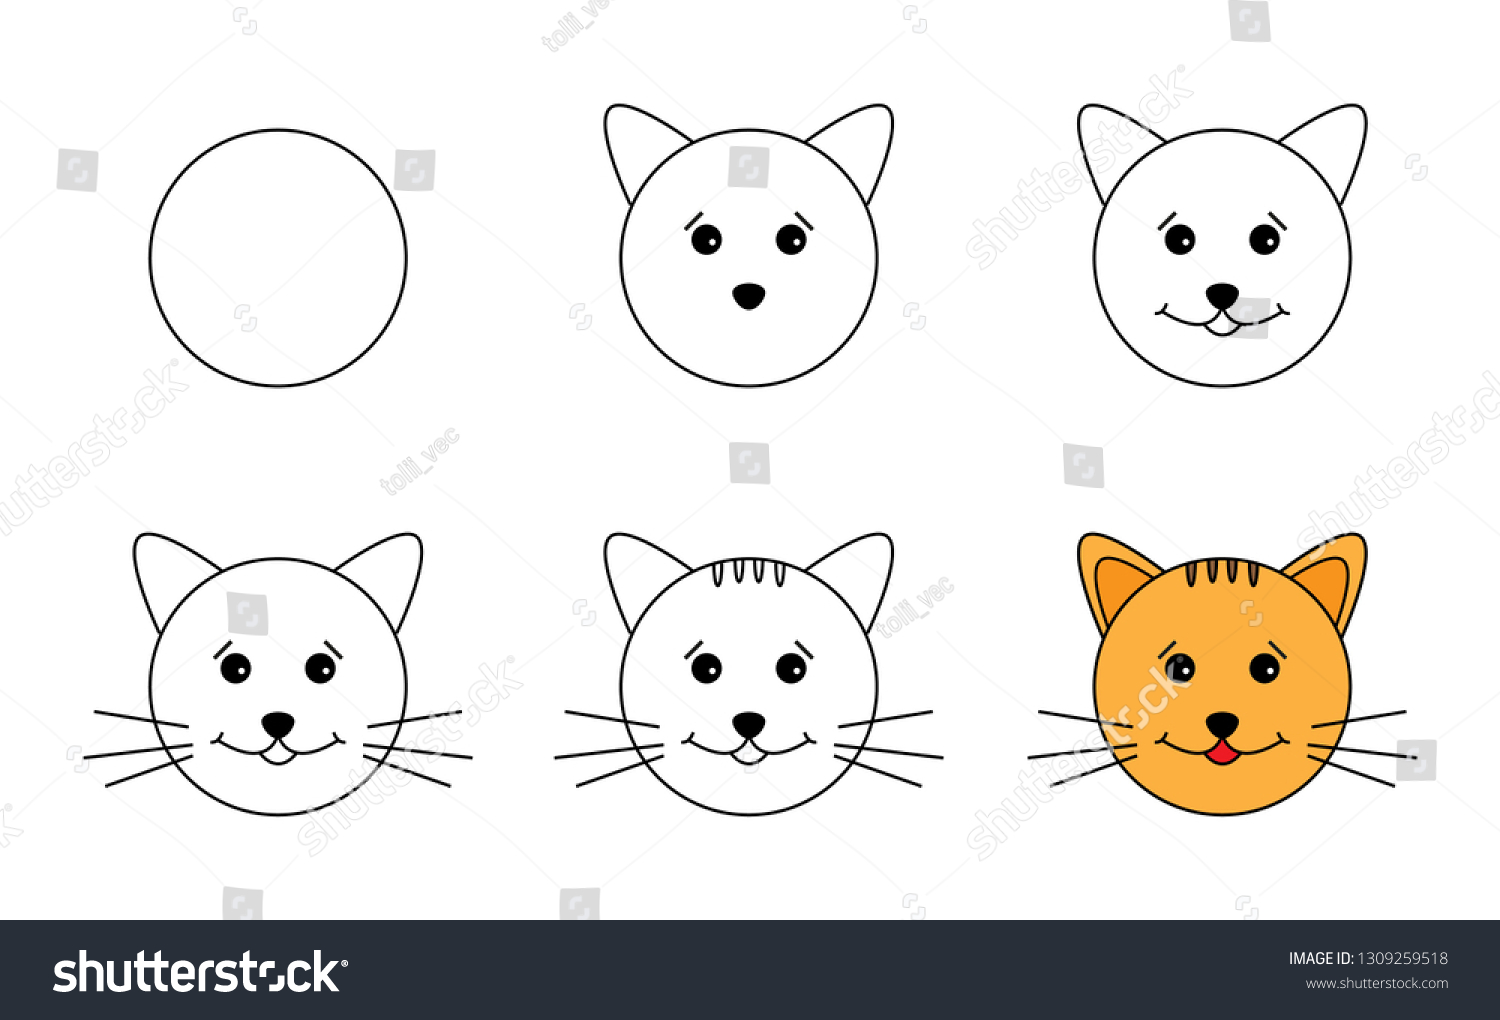 Featured image of post How To Draw A Cat Easy Step By Step For Kids As you can see we have quite a lot of steps